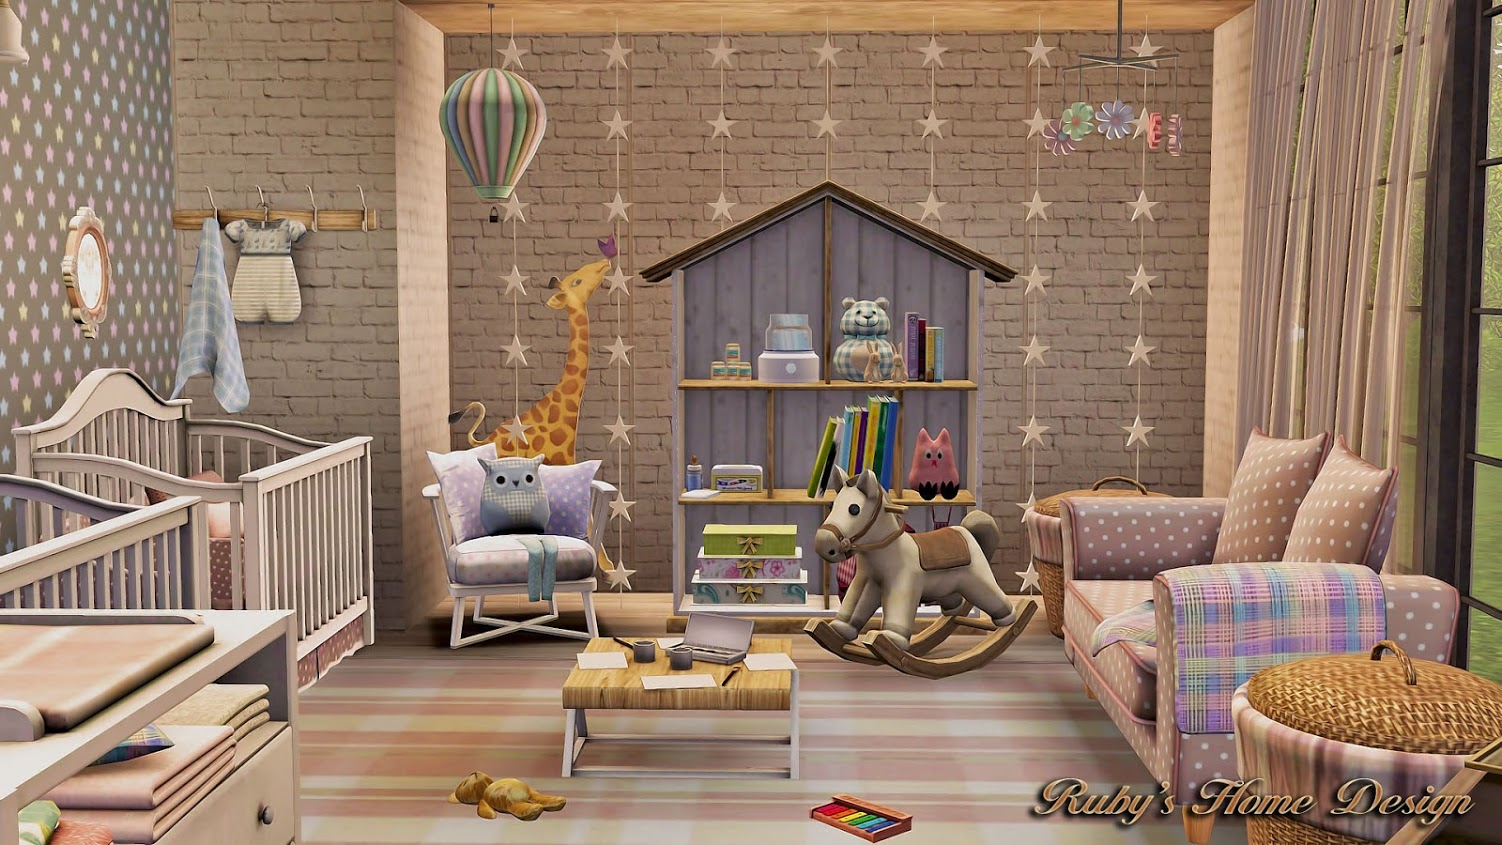 Sims3 Just Some Photos Ruby 39 S Home Design